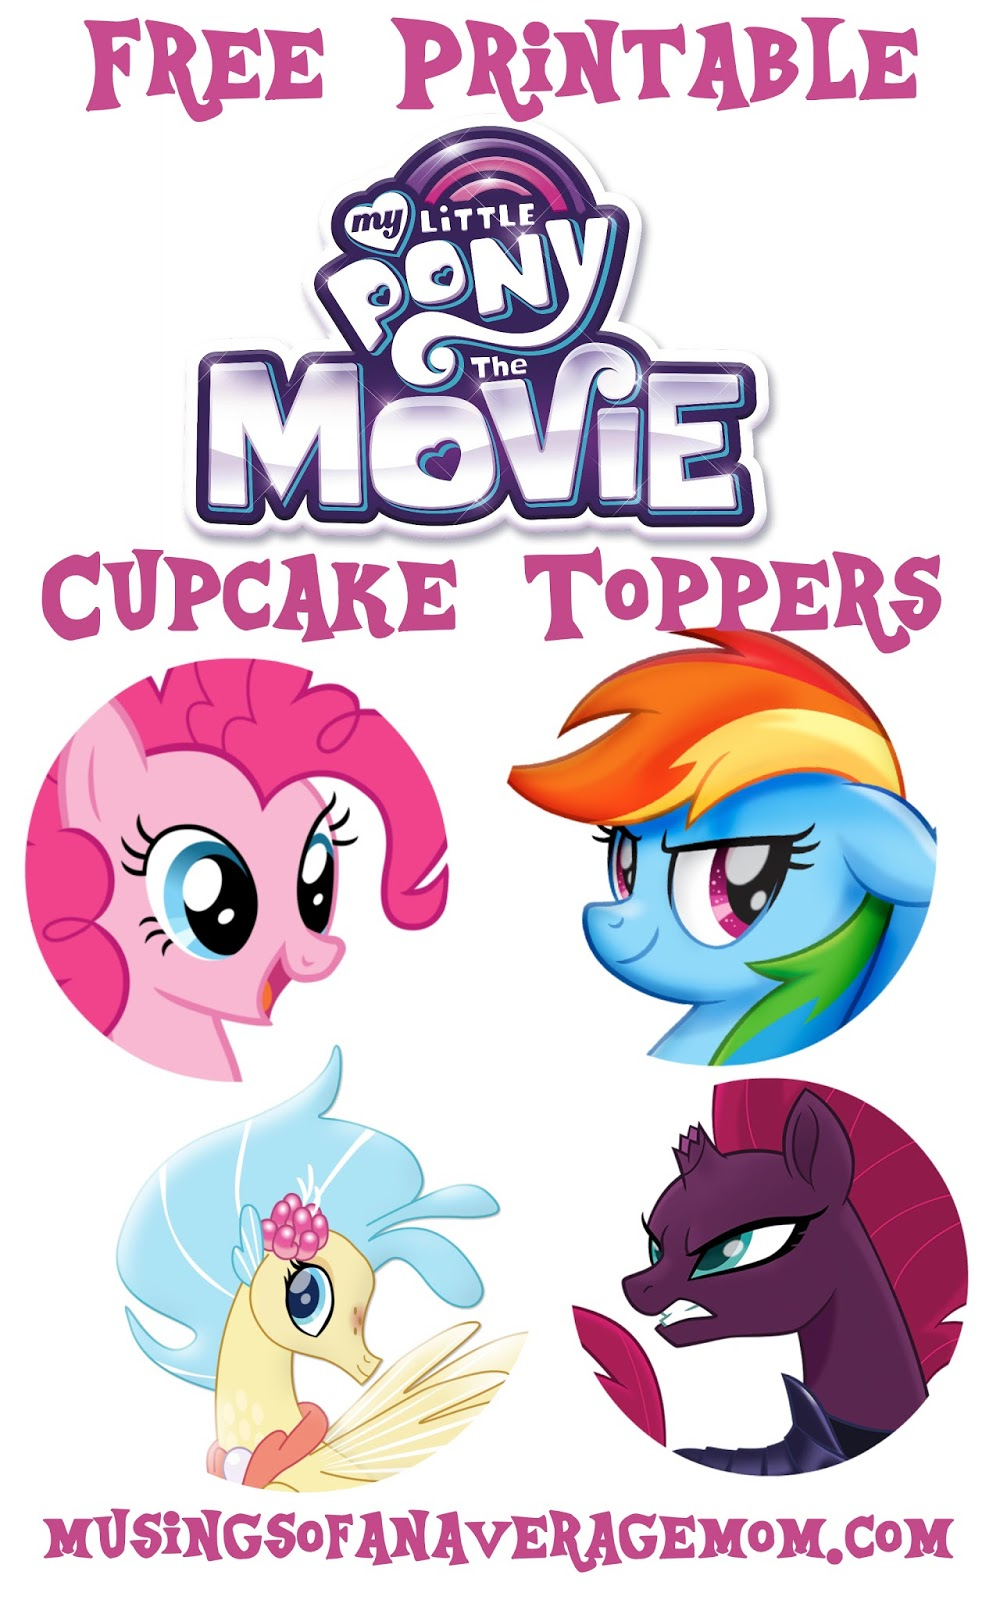 Musings Of An Average Mom: My Little Pony Movie - Cupcake Toppers - Free Printable My Little Pony Cupcake Toppers